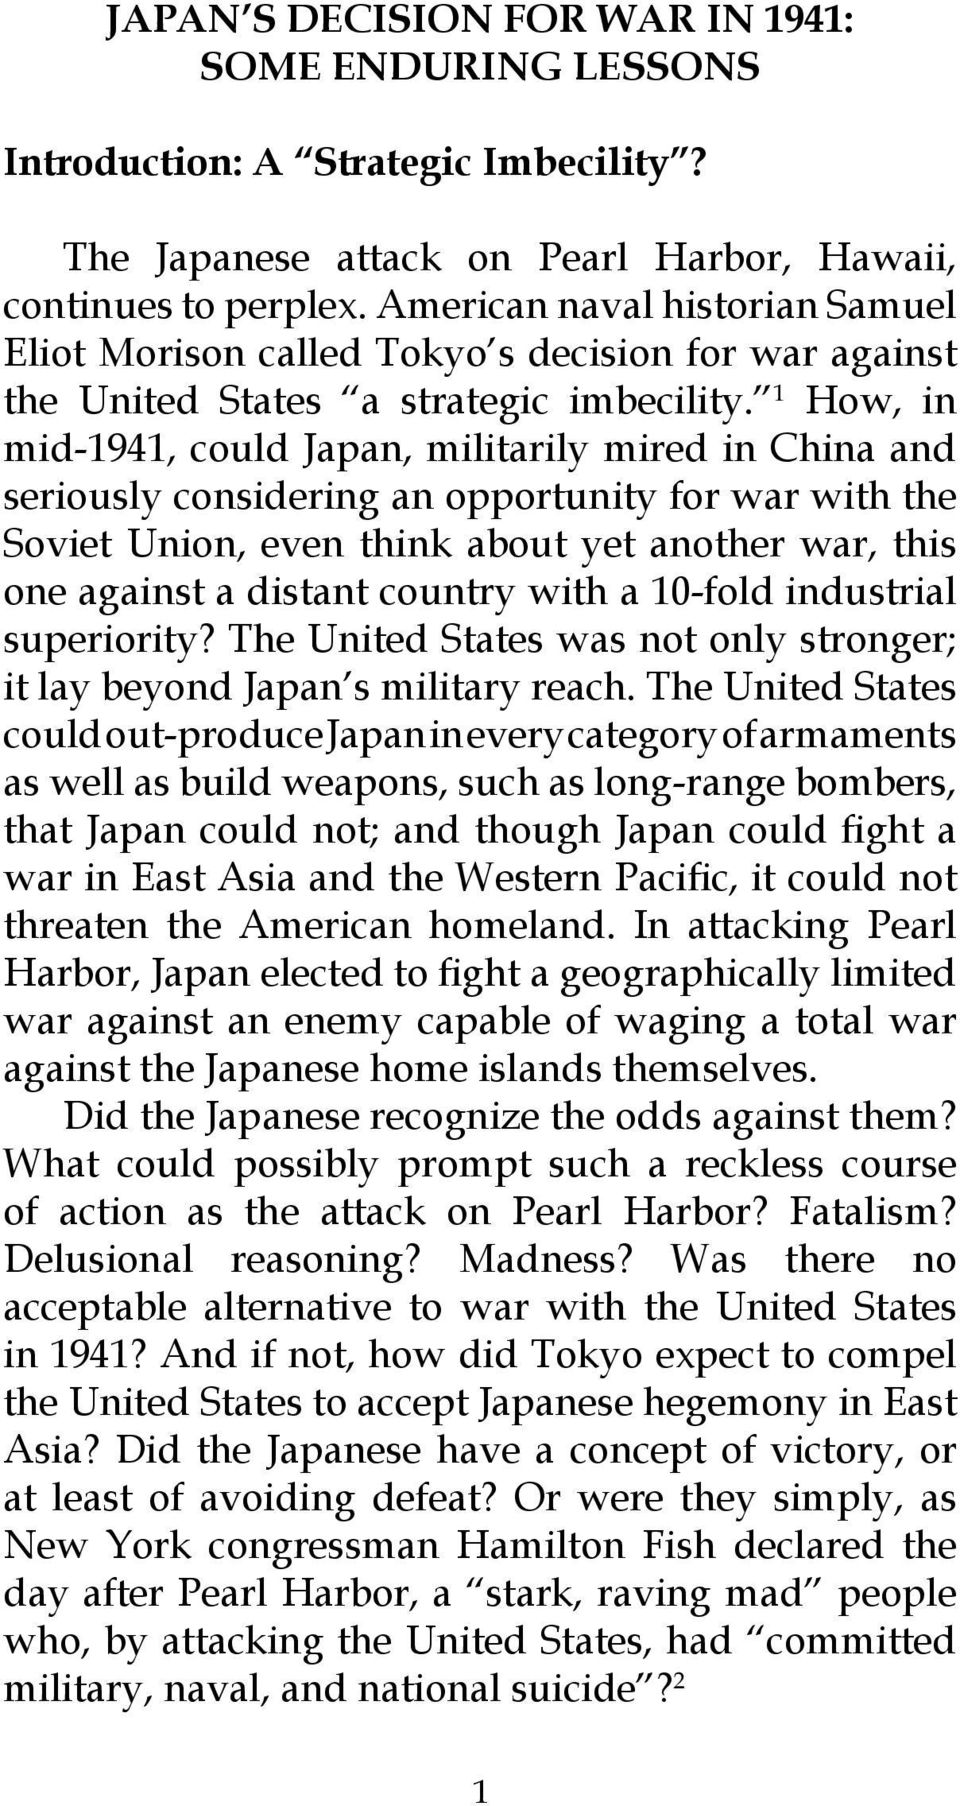 1 How, in mid-1941, could Japan, militarily mired in China and seriously considering an opportunity for war with the Soviet Union, even think about yet another war, this one against a distant country